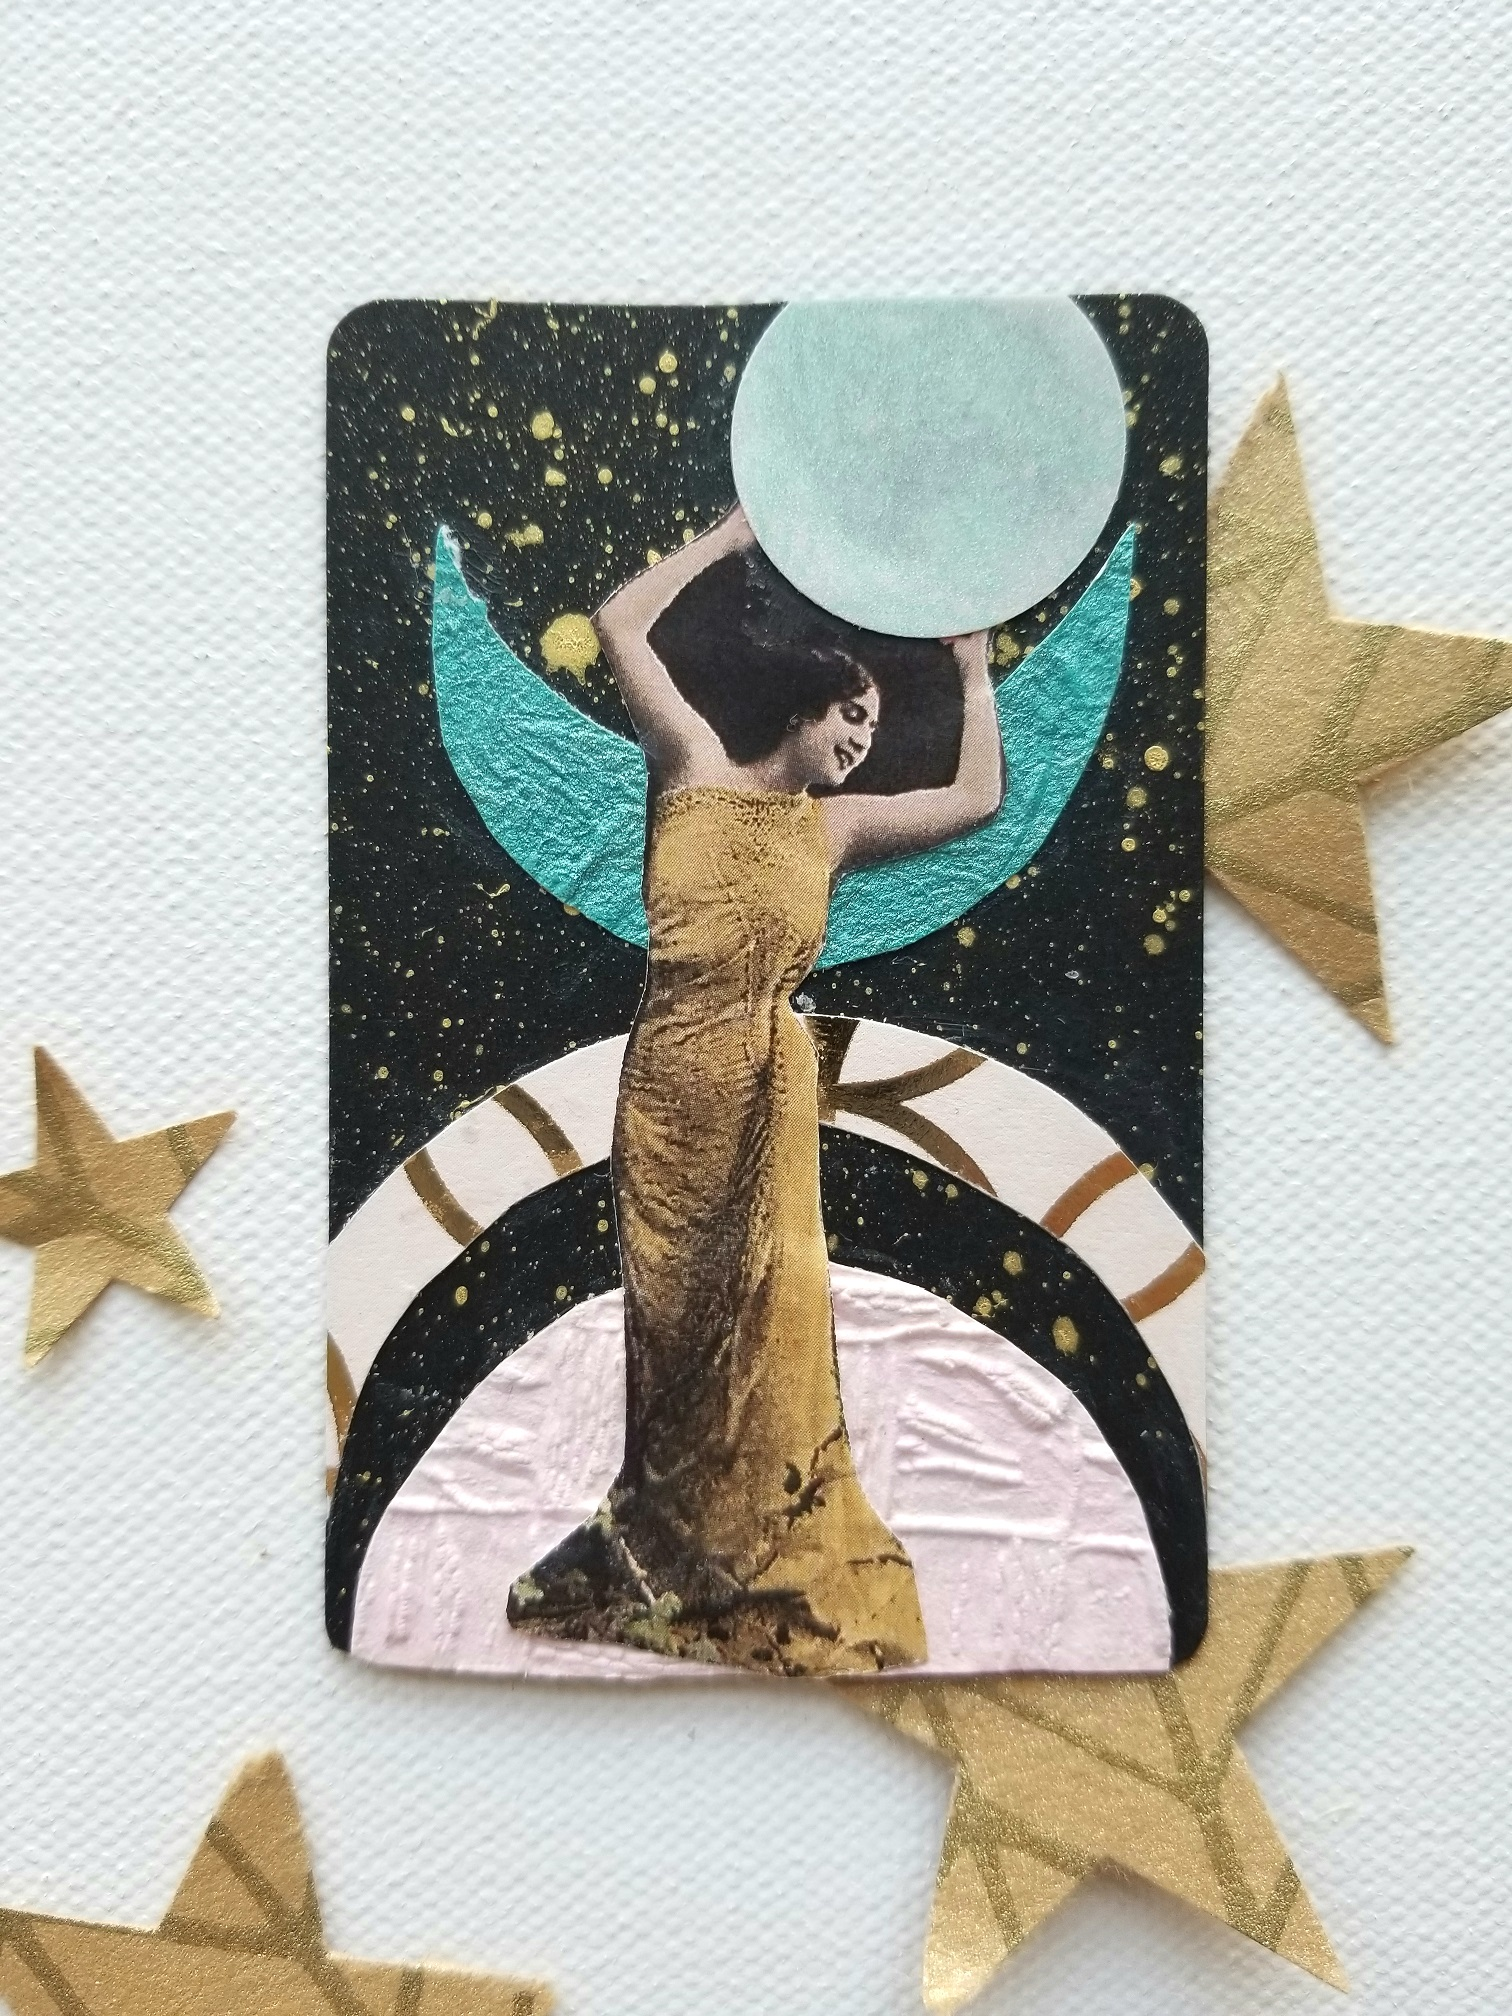 Galaxy Goddesses FortuneART Cards mixed media class by Kellee Wynne Studios (10) small.jpg